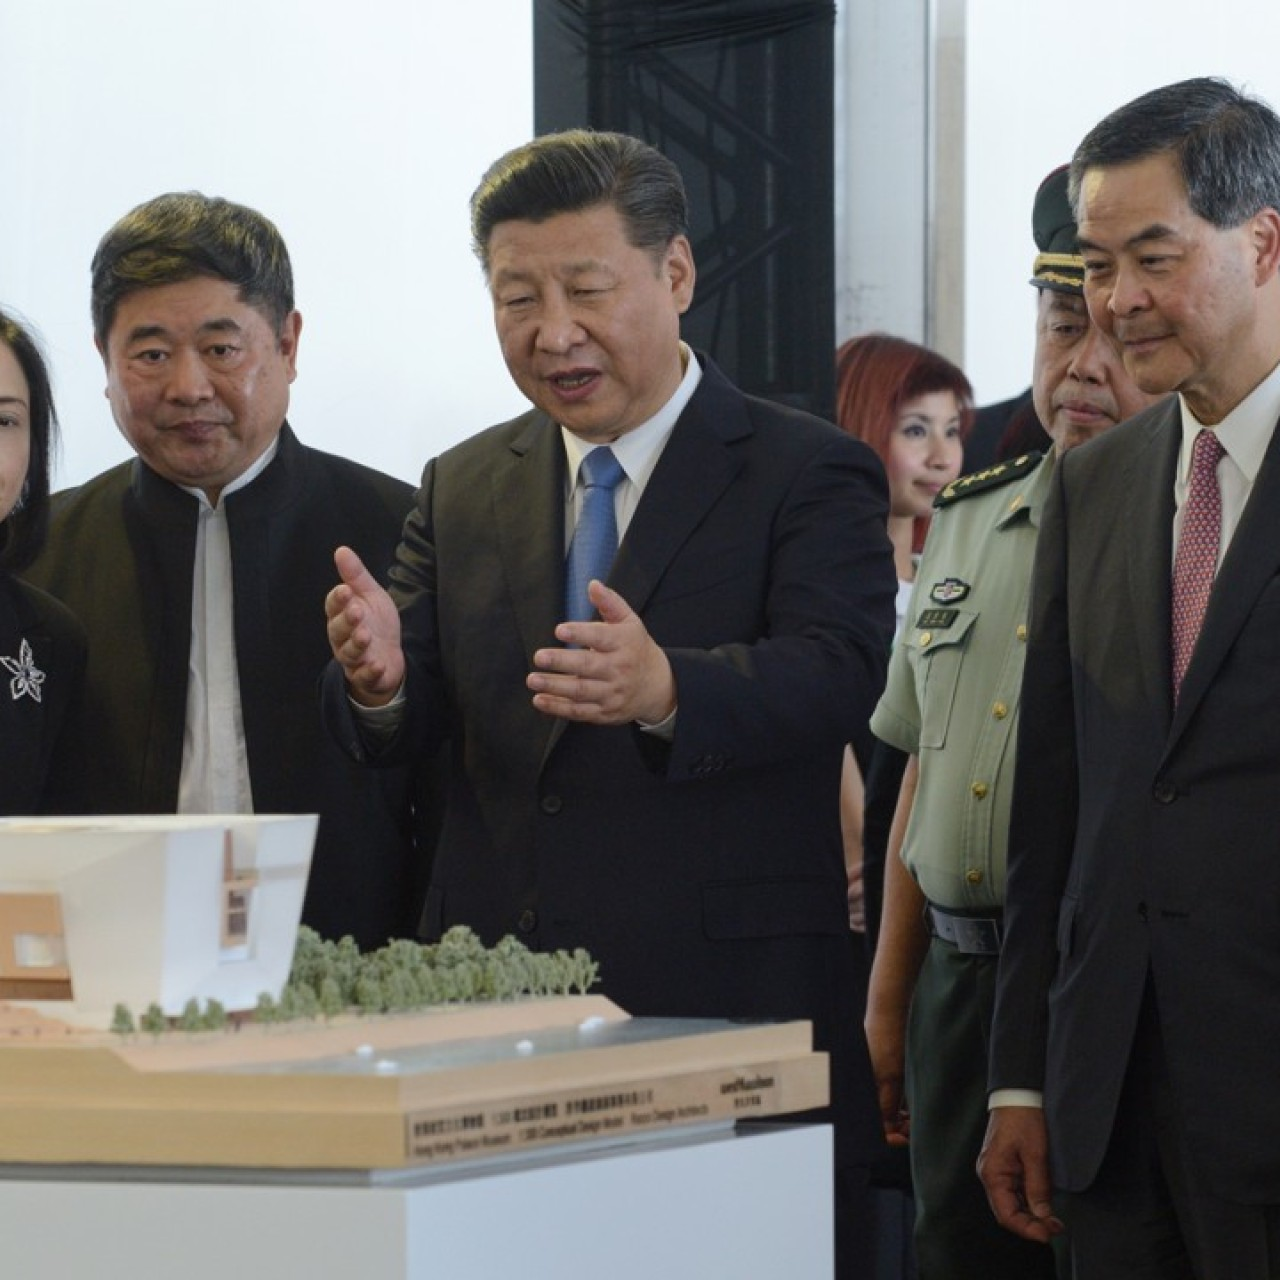 Xi Jinping witnesses Beijing's seal of approval for Hong Kong's